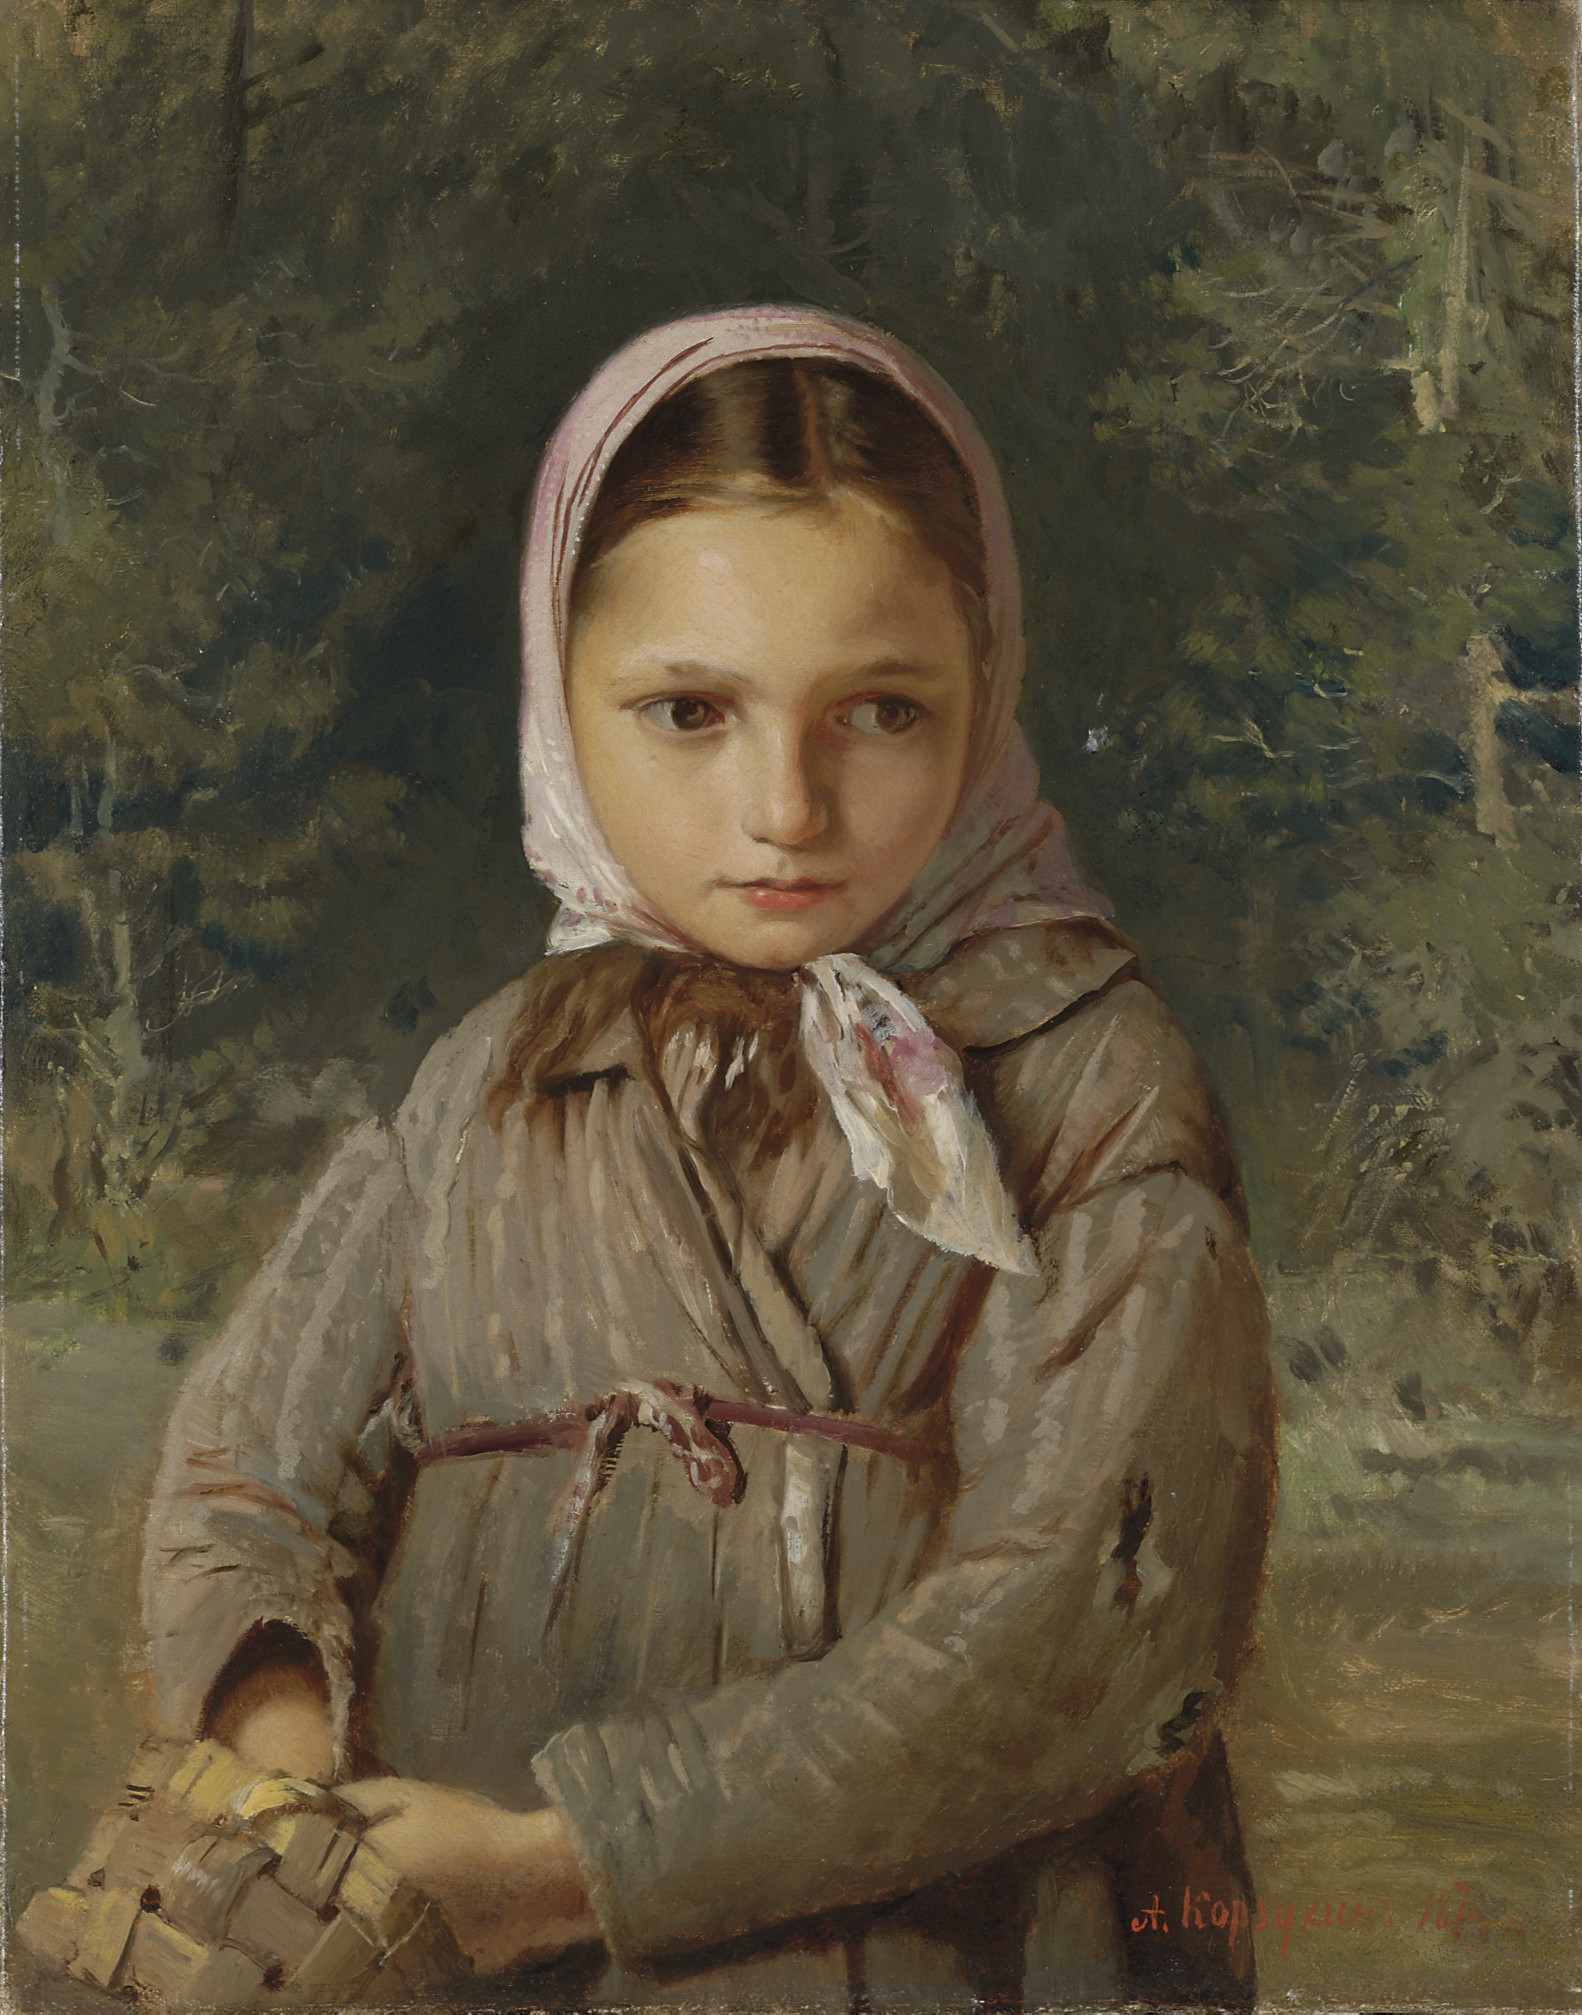 Portrait of a young girl in a headscarf